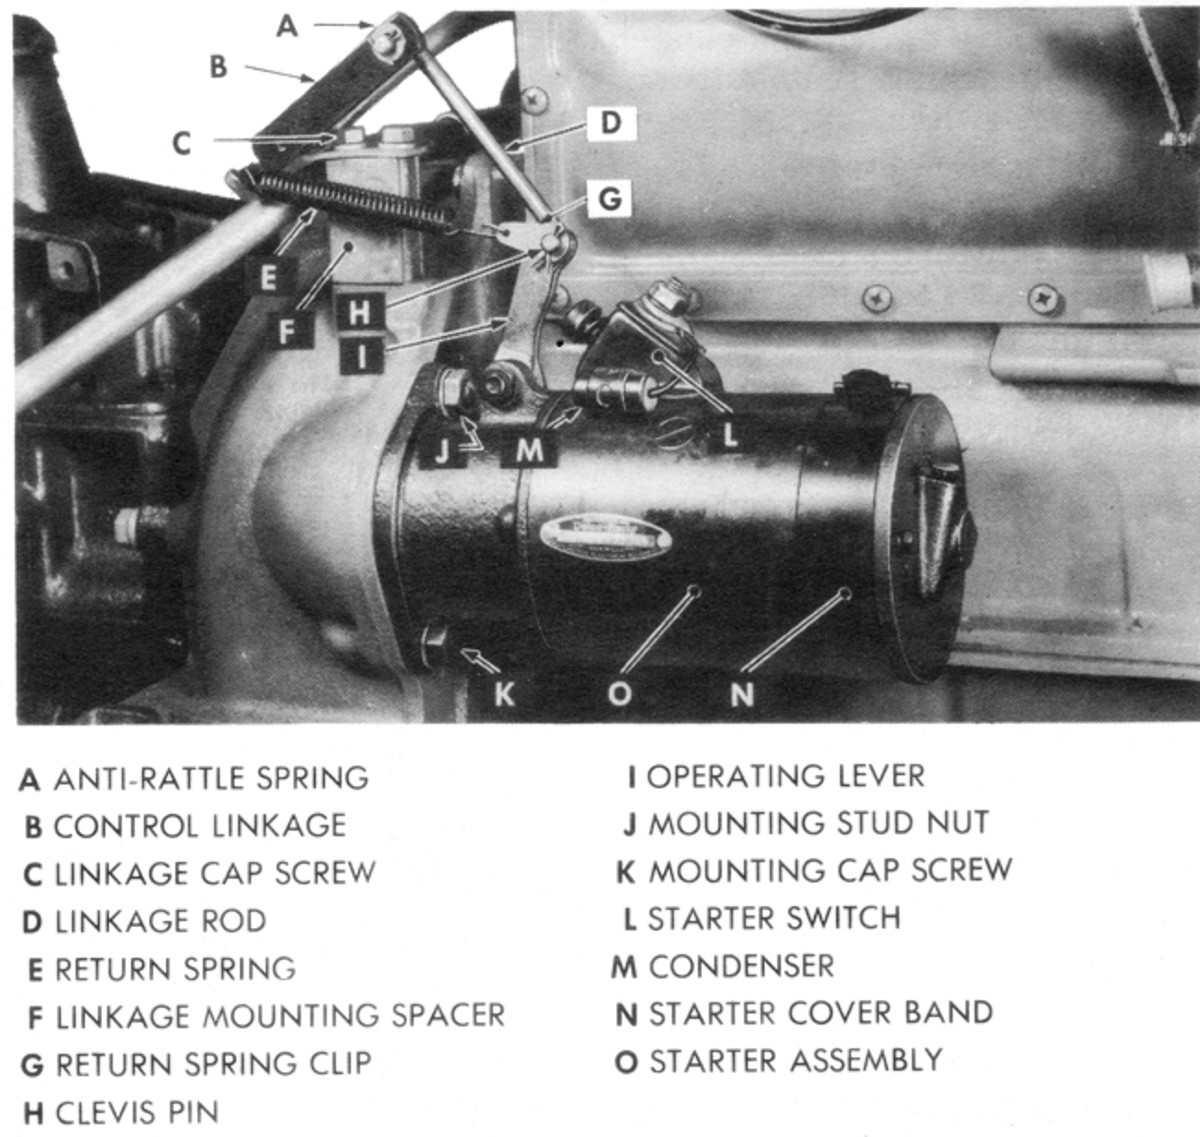 A typical foot pedal-operated Delco-Remy overrunning clutch starter as used on a CCKW. While there are only two basic types of starters used on most common vintage HMVs, there are many variations in mountings, linkages, and electrical hookups. The adjustments of foot pedals and related mechanical components for individual vehicles will be found in the appropriate service manuals.